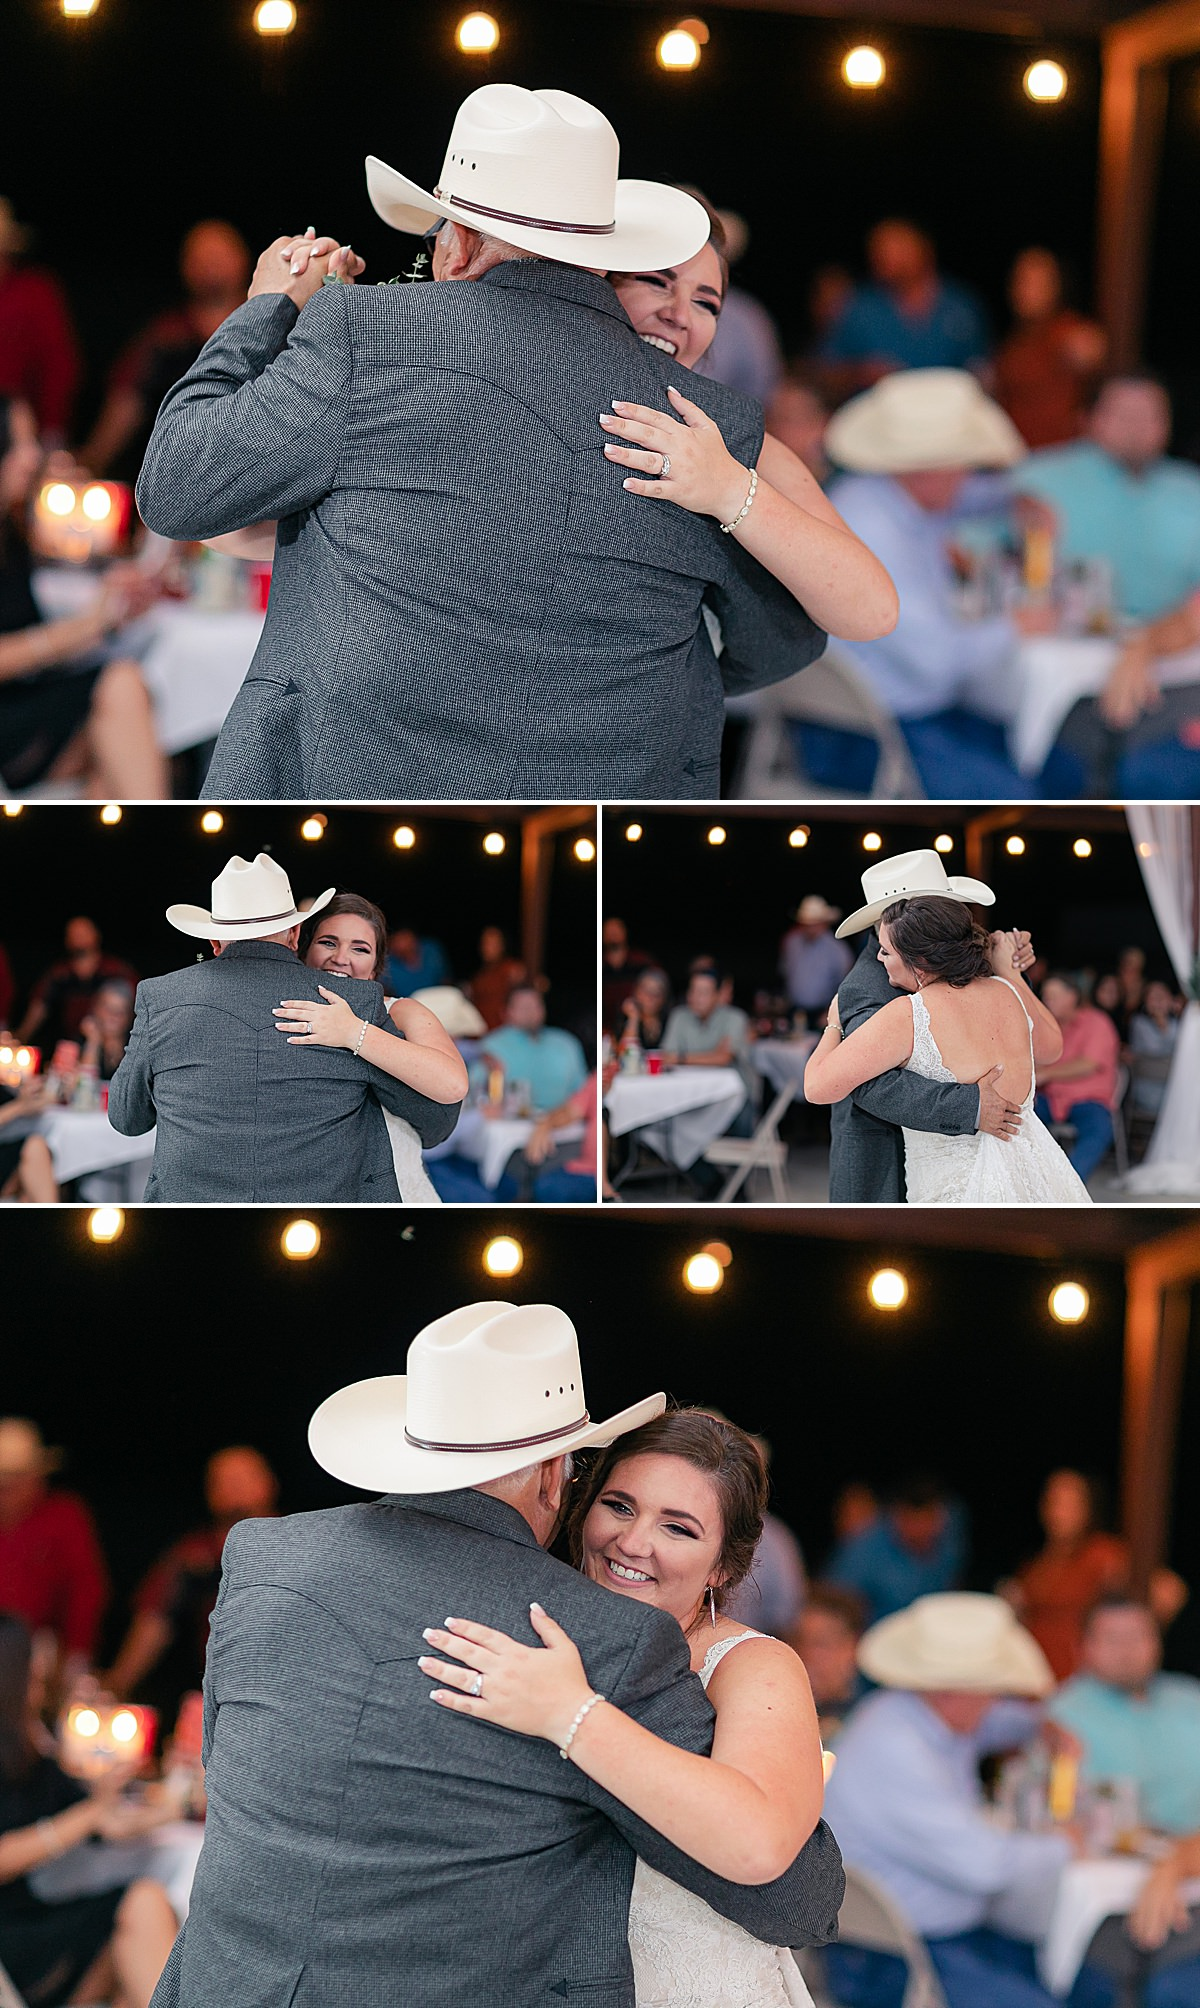 Rustic-Texas-Wedding-Hollow-Creek-Ranch-Carly-Barton-Photography_0034.jpg